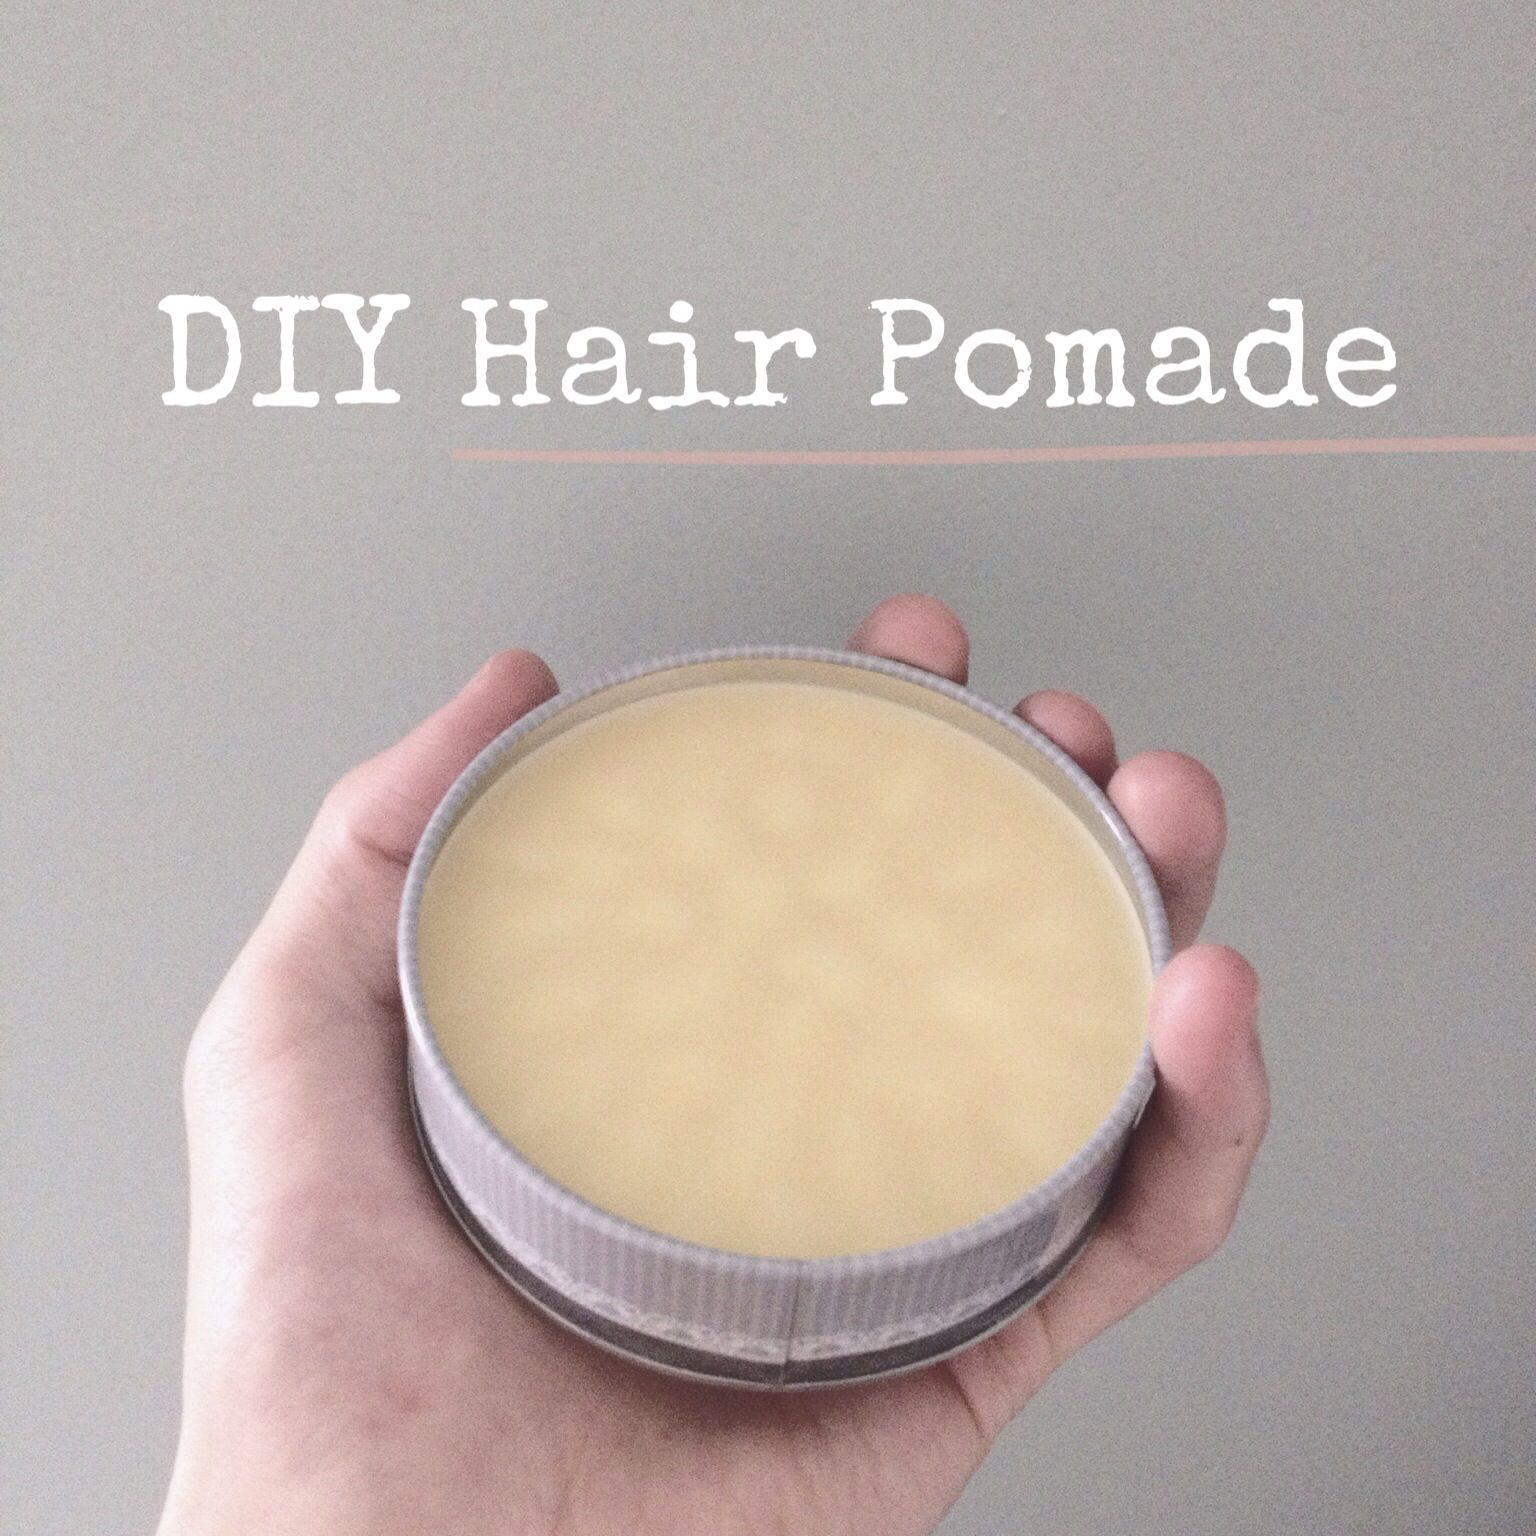 Diy haircut men diy hair pomade  handmade with love  pinterest  hair pomade diy